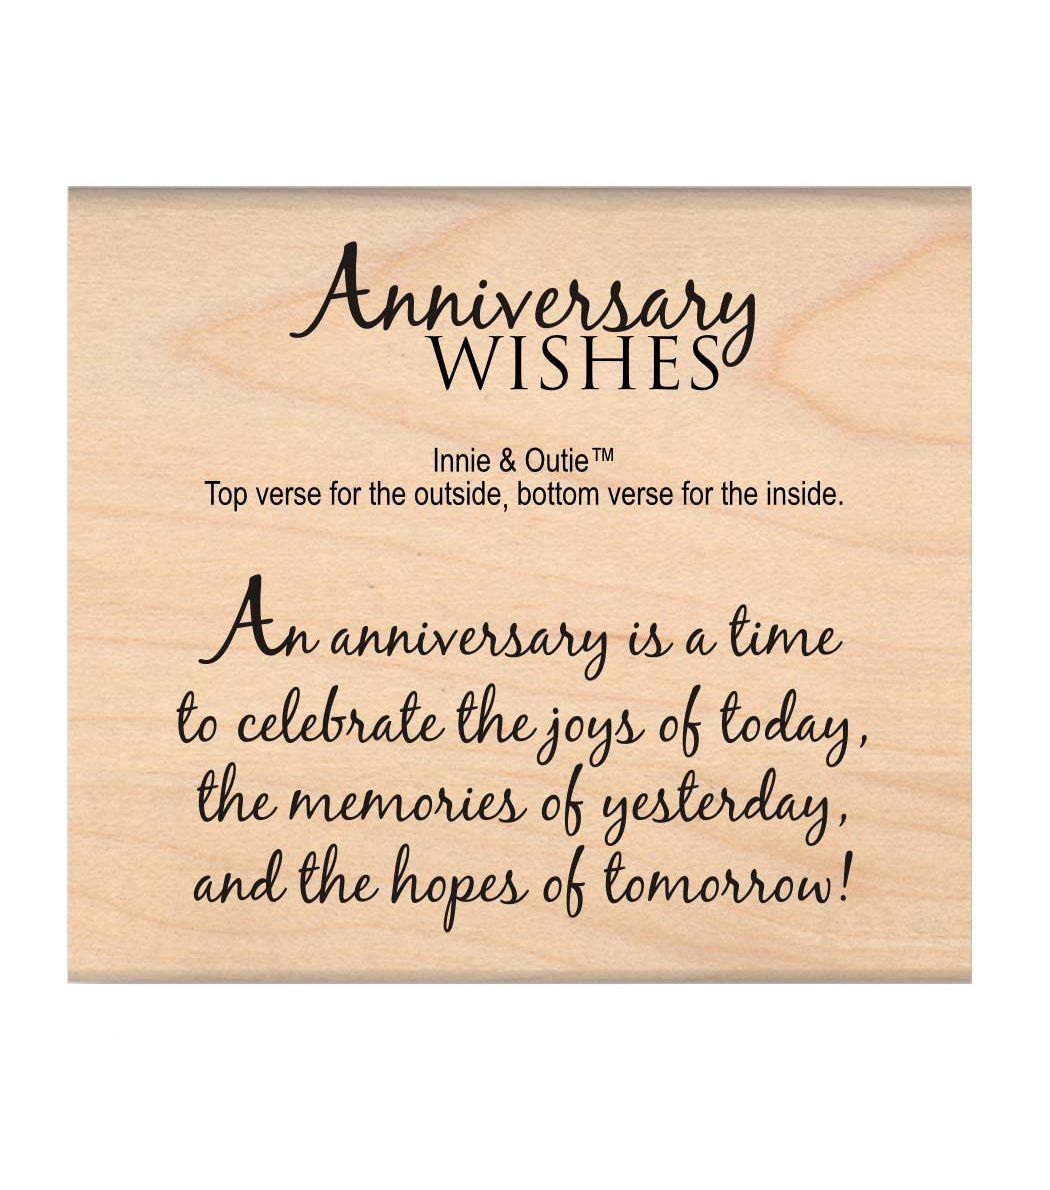 Mse My Sentiments Exactly Anniversary Wishes Mounted Stamp 2 5 X3 Joann Anniversary Card Sayings Card Sayings Verses For Cards